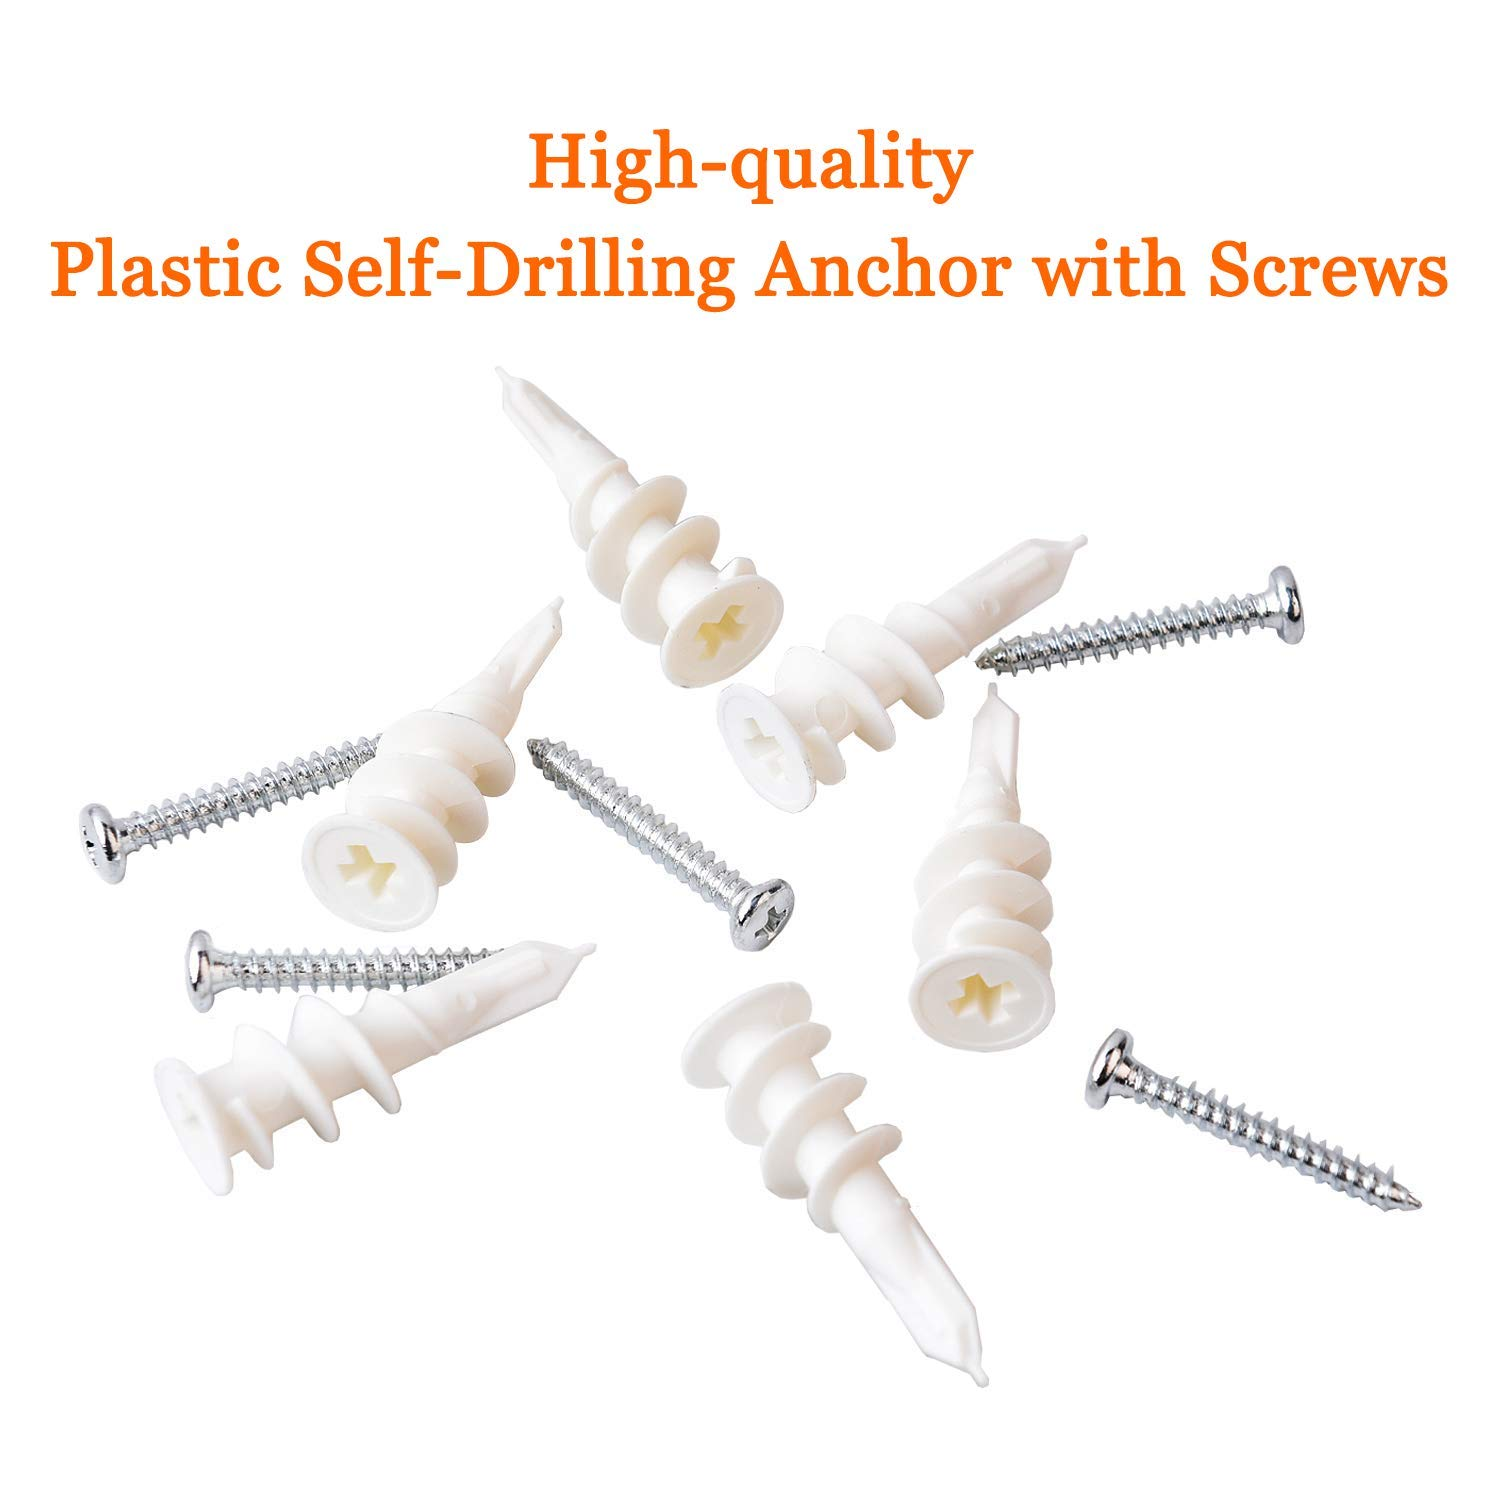 13x42mm + 15x33mm ISPINNER 140pcs Drywall Anchors Plastic Self Drilling Hollow Wall Anchors with Screws Assortment Kit